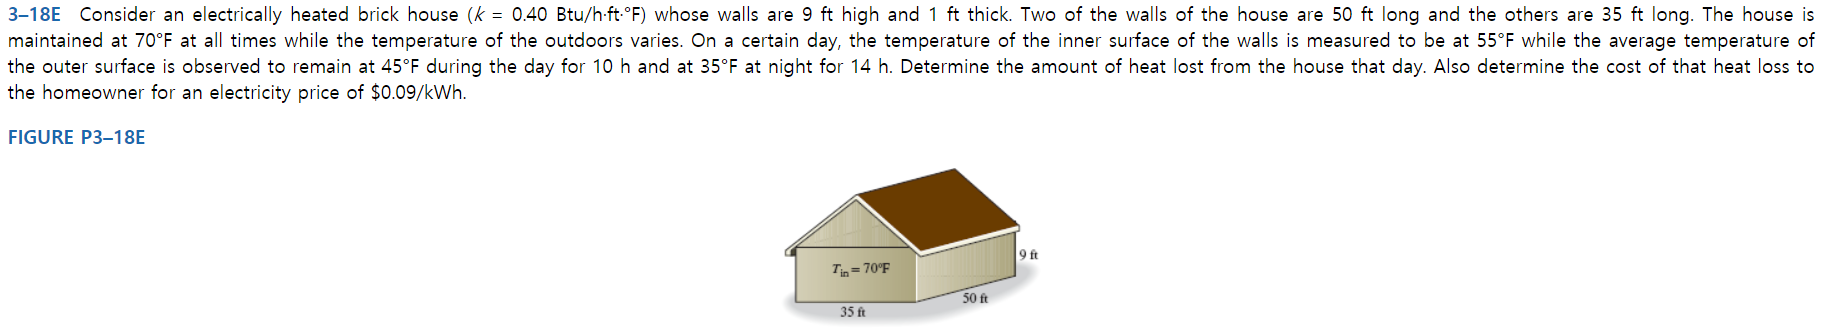 3-18E Consider an electrically heated brick house (k = 0.40 Btu/h ft-°F) whose walls are 9 ft high and 1 ft thick. Two of the walls of the house are 50 ft long and the others are 35 ft long. The house is maintained at 70°F at all times while the temperature of the outdoors varies. On a certain day, the temperature of the inner surface of the walls is measured to be at 55°F while the average temperature of the outer surface is observed to remain at 45°F during the day for 10 h and at 35°F at night for 14 h. Determine the amount of heat lost from the house that day. Also determine the cost of that heat loss to the homeowner for an electricity price of $0.09/kWh. FIGURE P3-18E 9 ft TiD=70°F 50 ft 35 ft